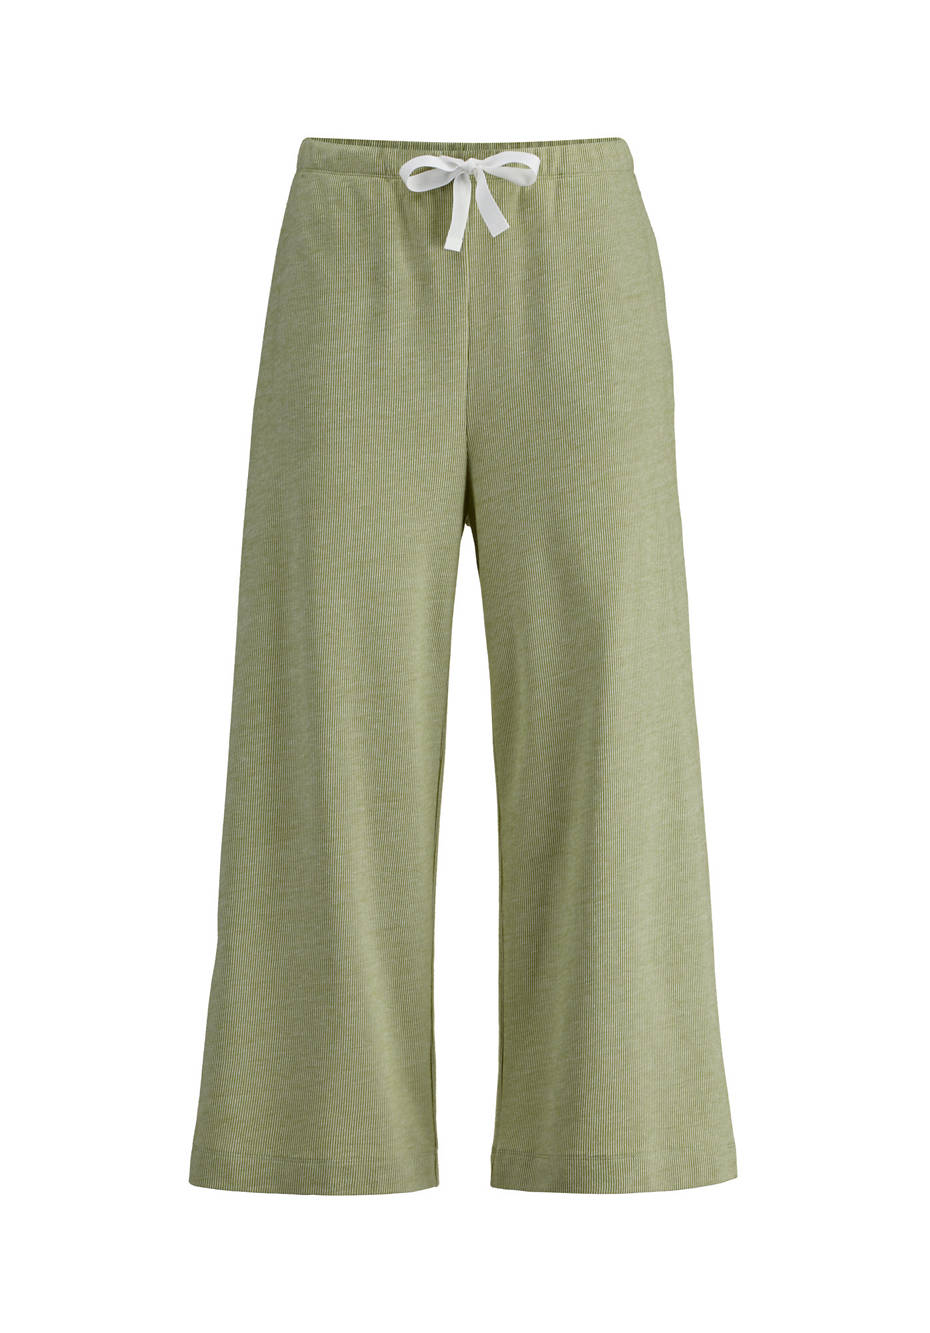 Jersey trousers made from pure organic cotton